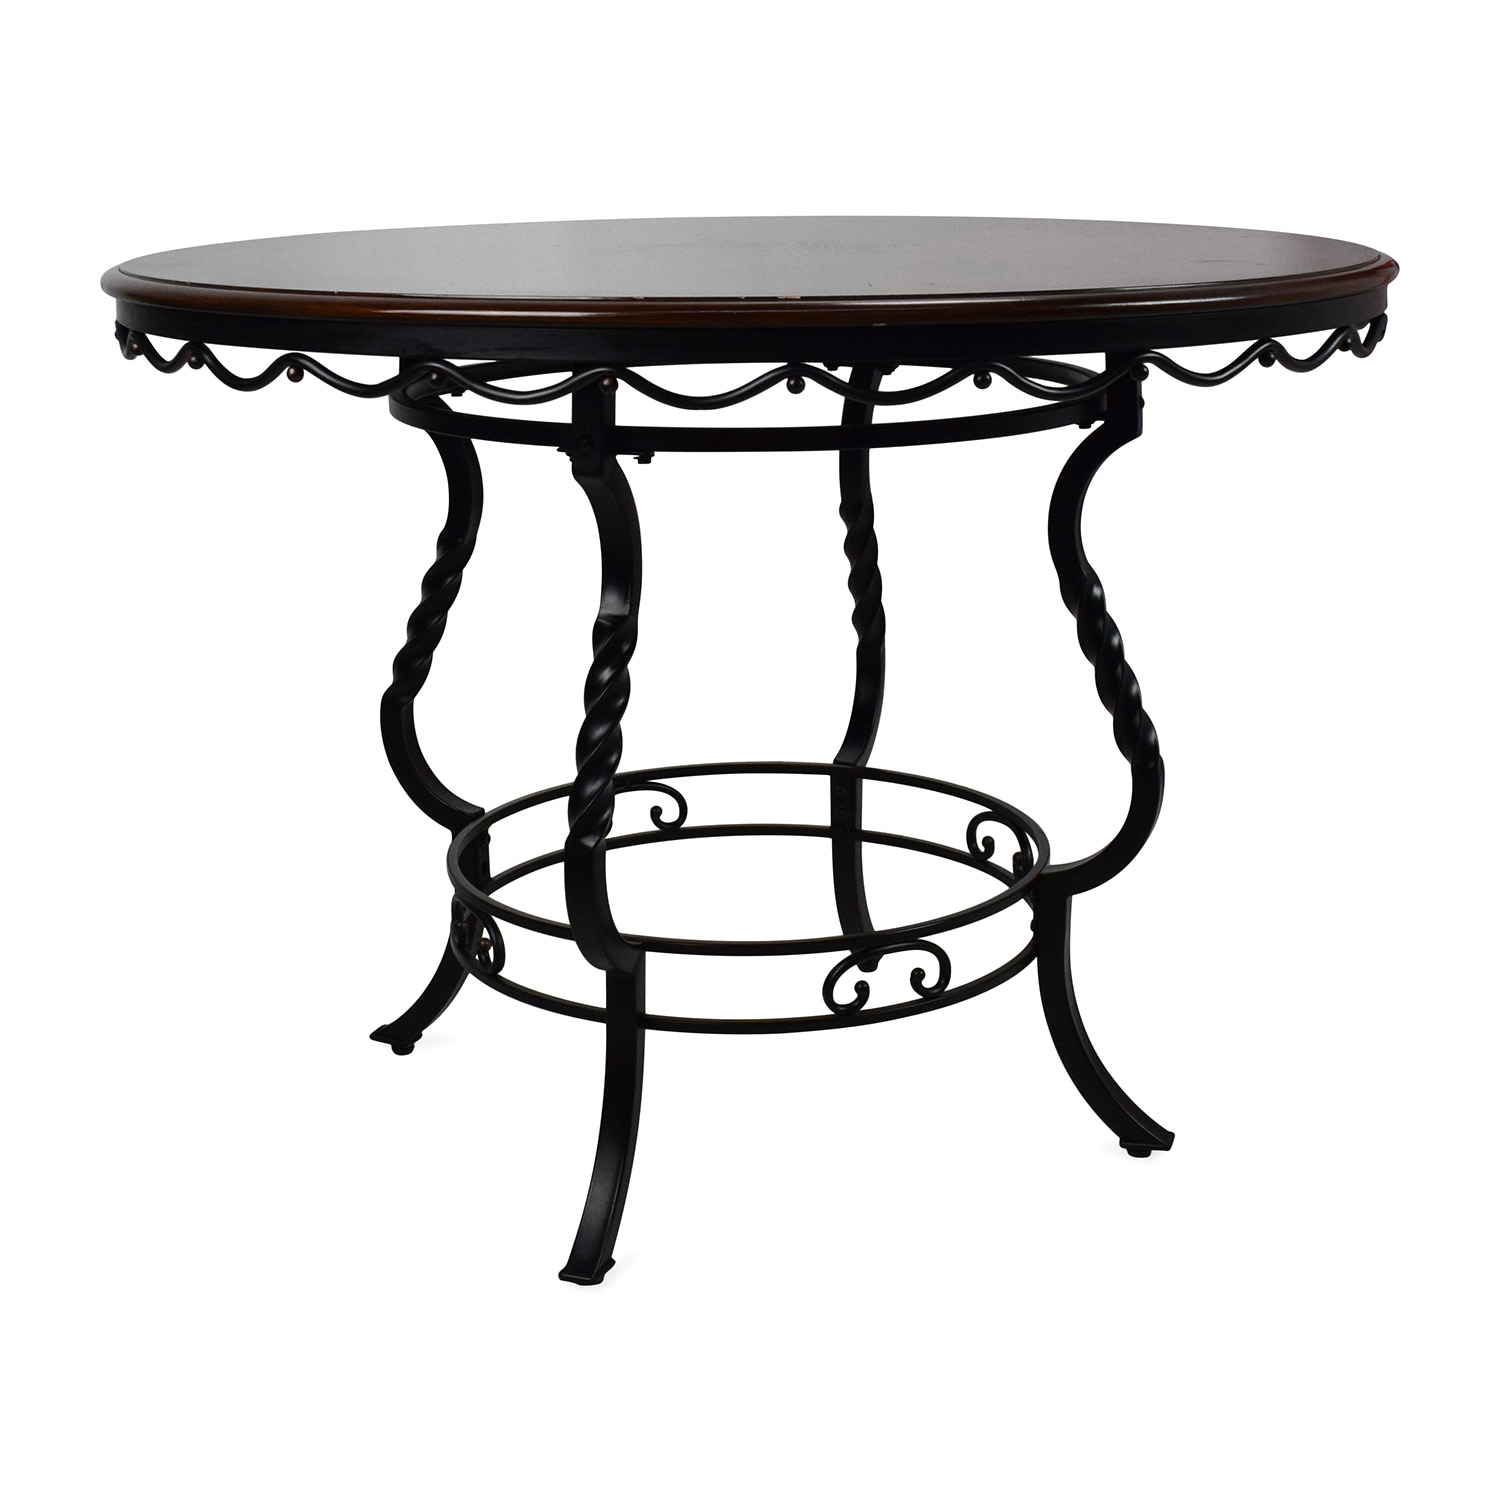 Ashley Furniture Table And Chairs 84 Off Ashley Furniture Ashley Nola Round Dining Table